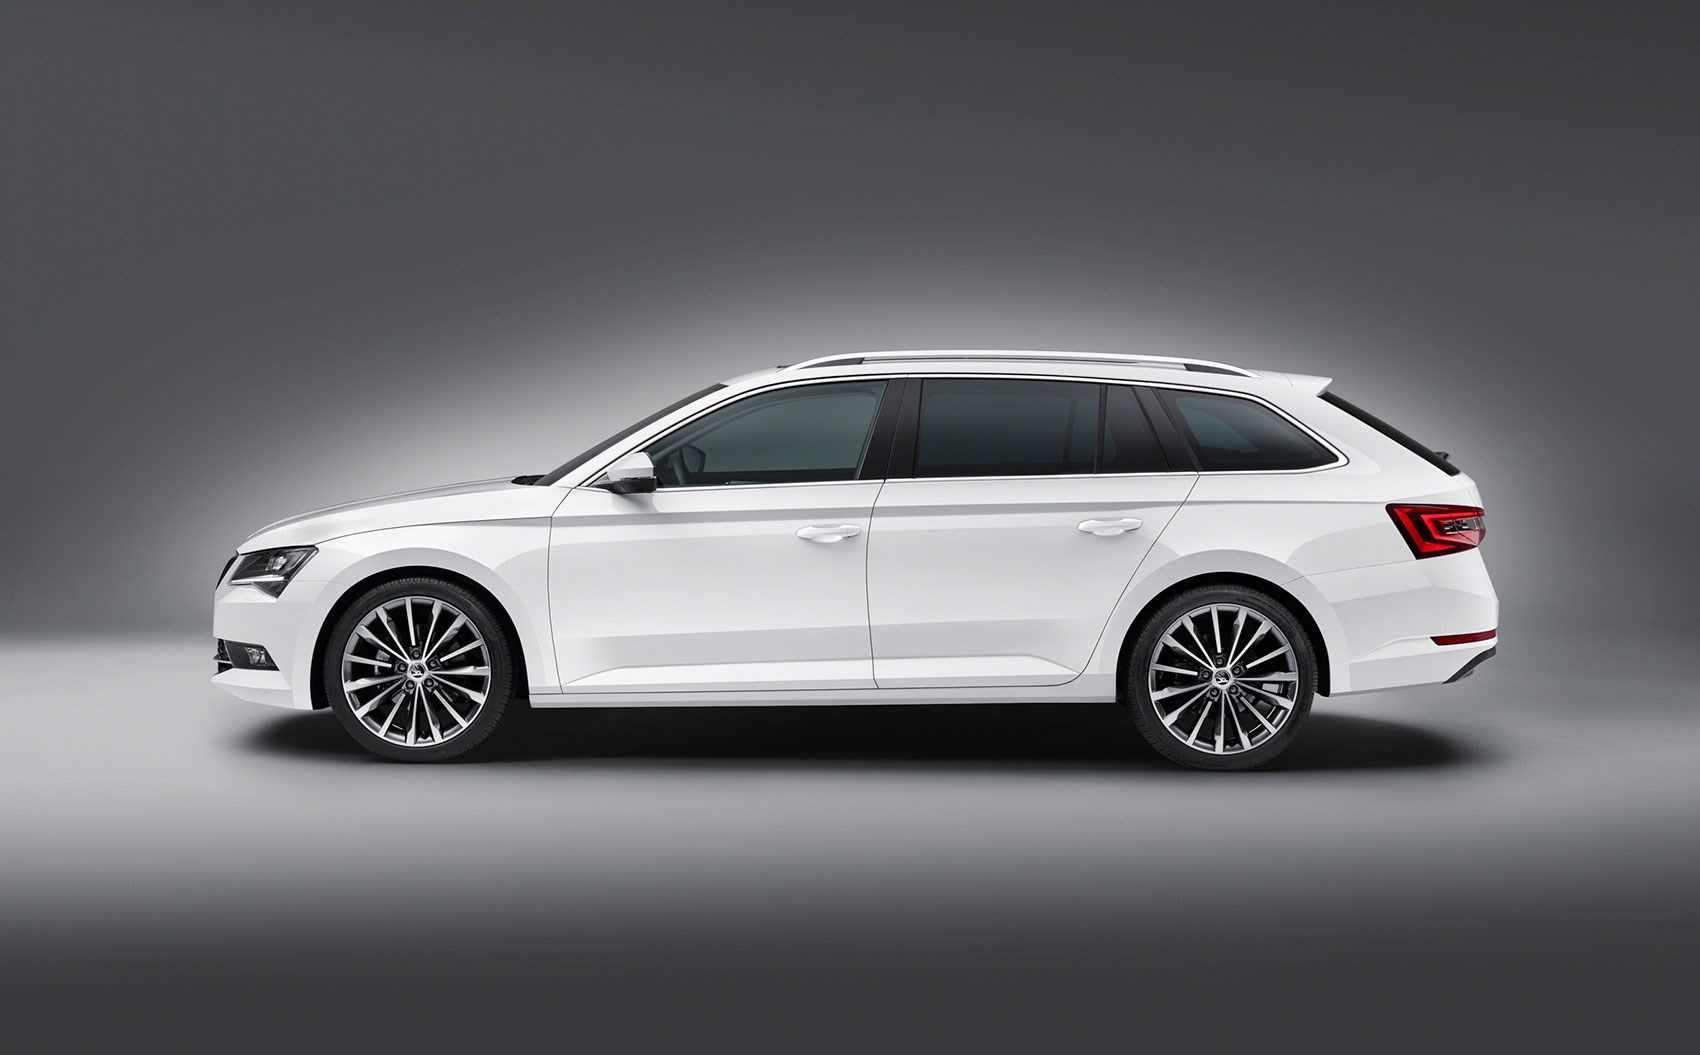 2017 Skoda Superb wagon dimensions